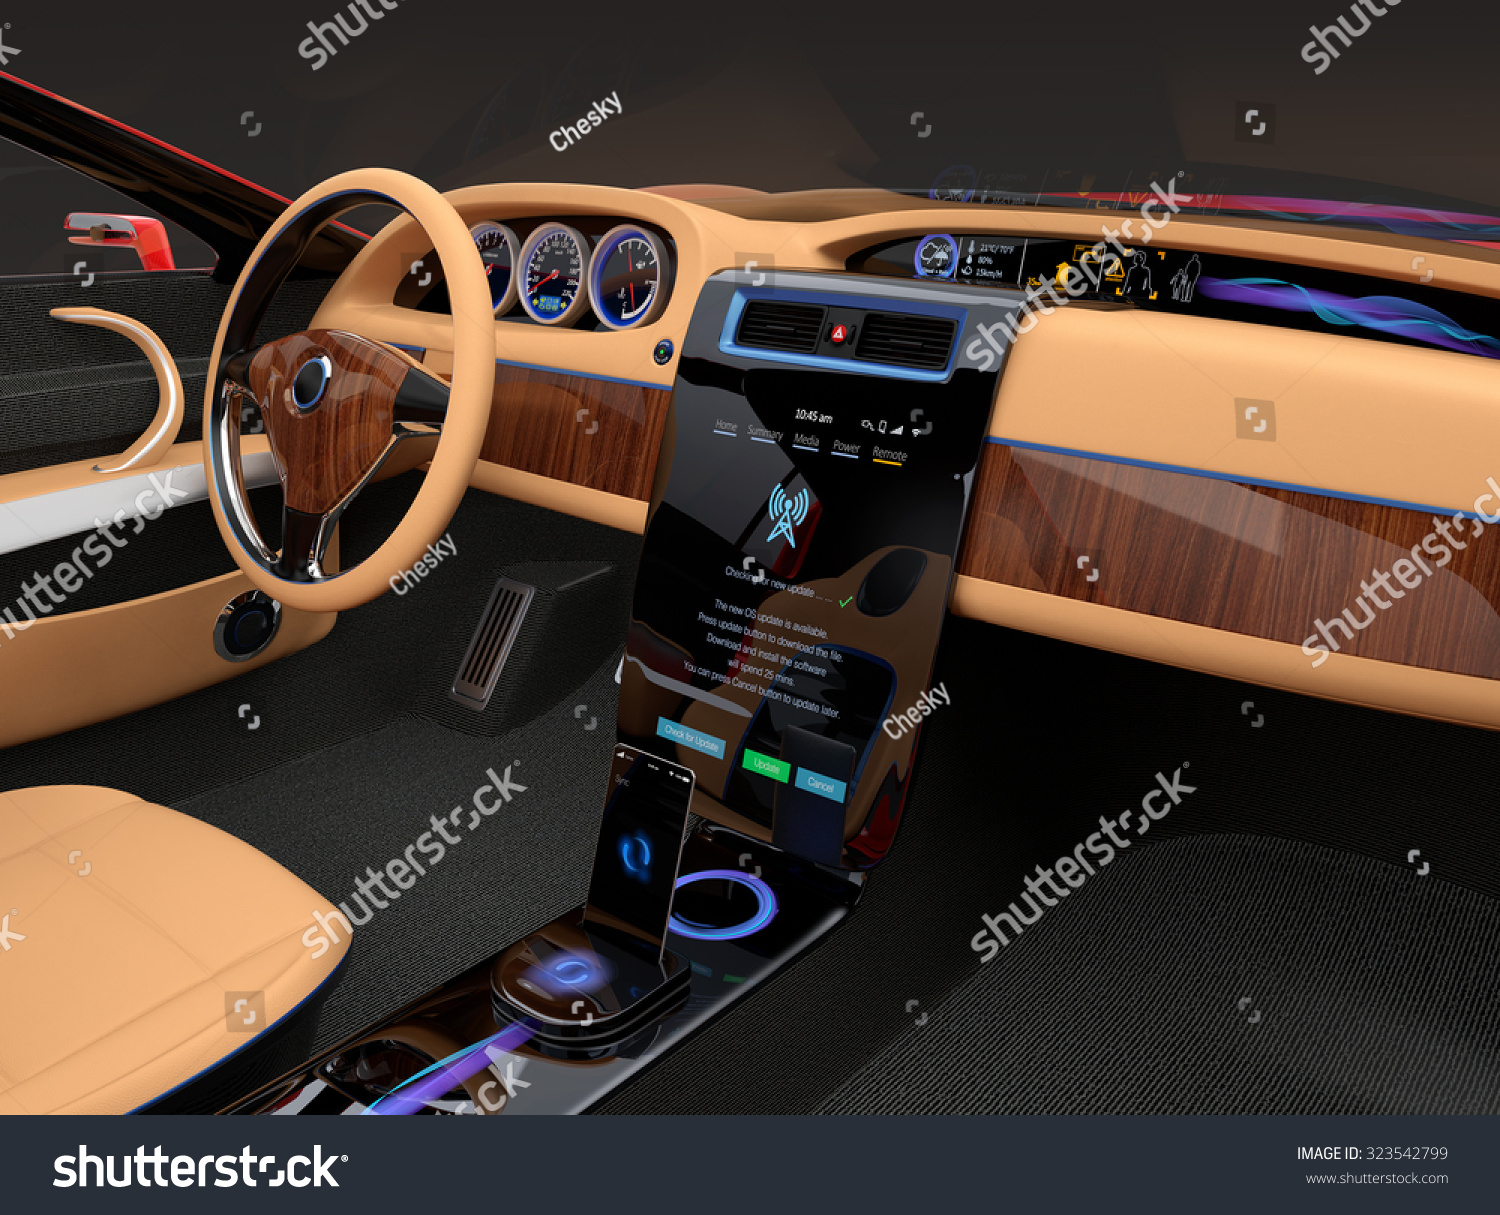 Stylish Electric Car Interior Luxury Wood Stock